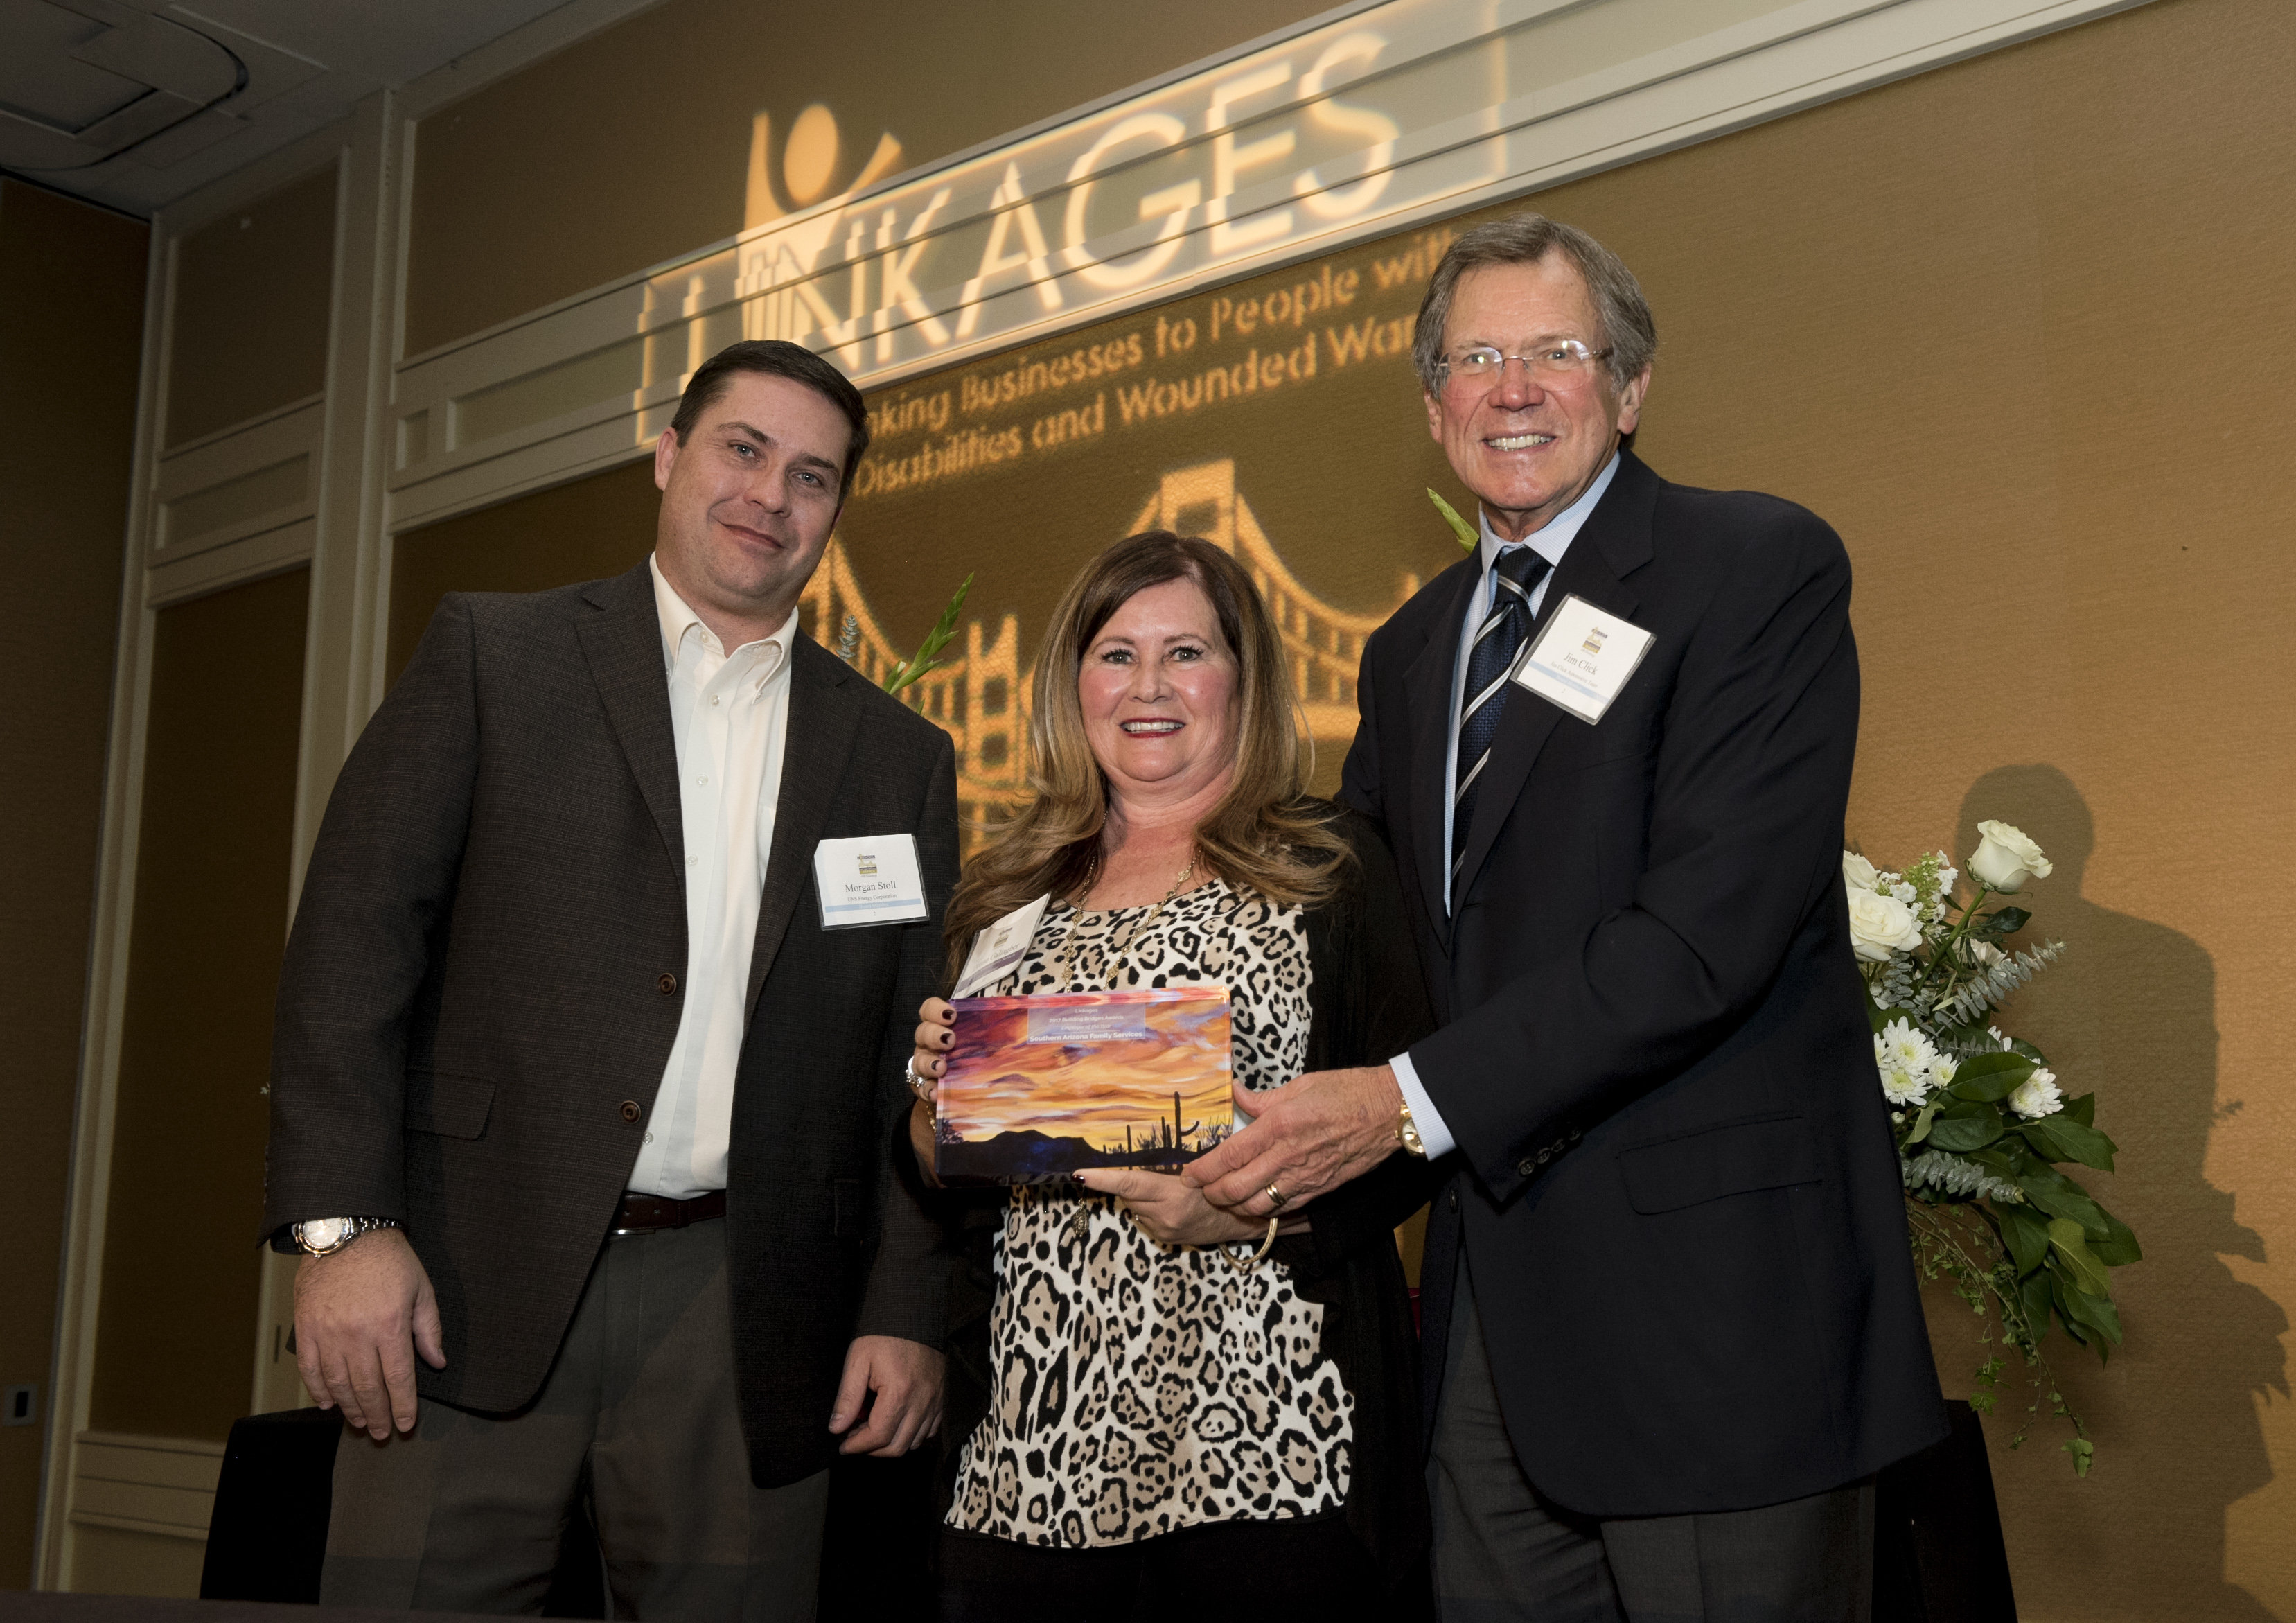 Morgan Stoll and Jim Click giving Donna Gallagher the employer of the year award. Donna is in the middle of them holding her award.